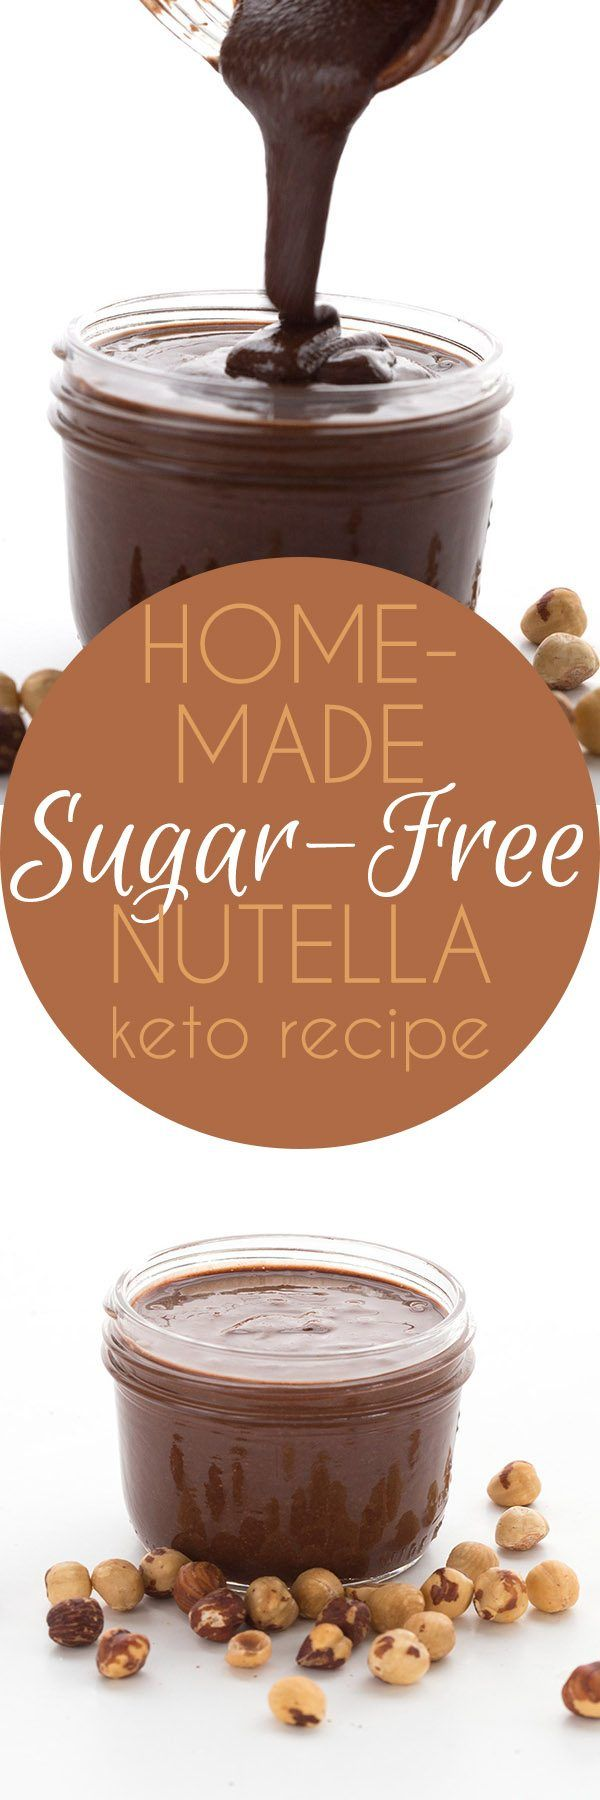 Homemade Sugar Free Nutella - Roasted hazelnuts and chocolate together in a delicious low carb chocolate hazelnut spread. This keto Nutella will knock your socks off!